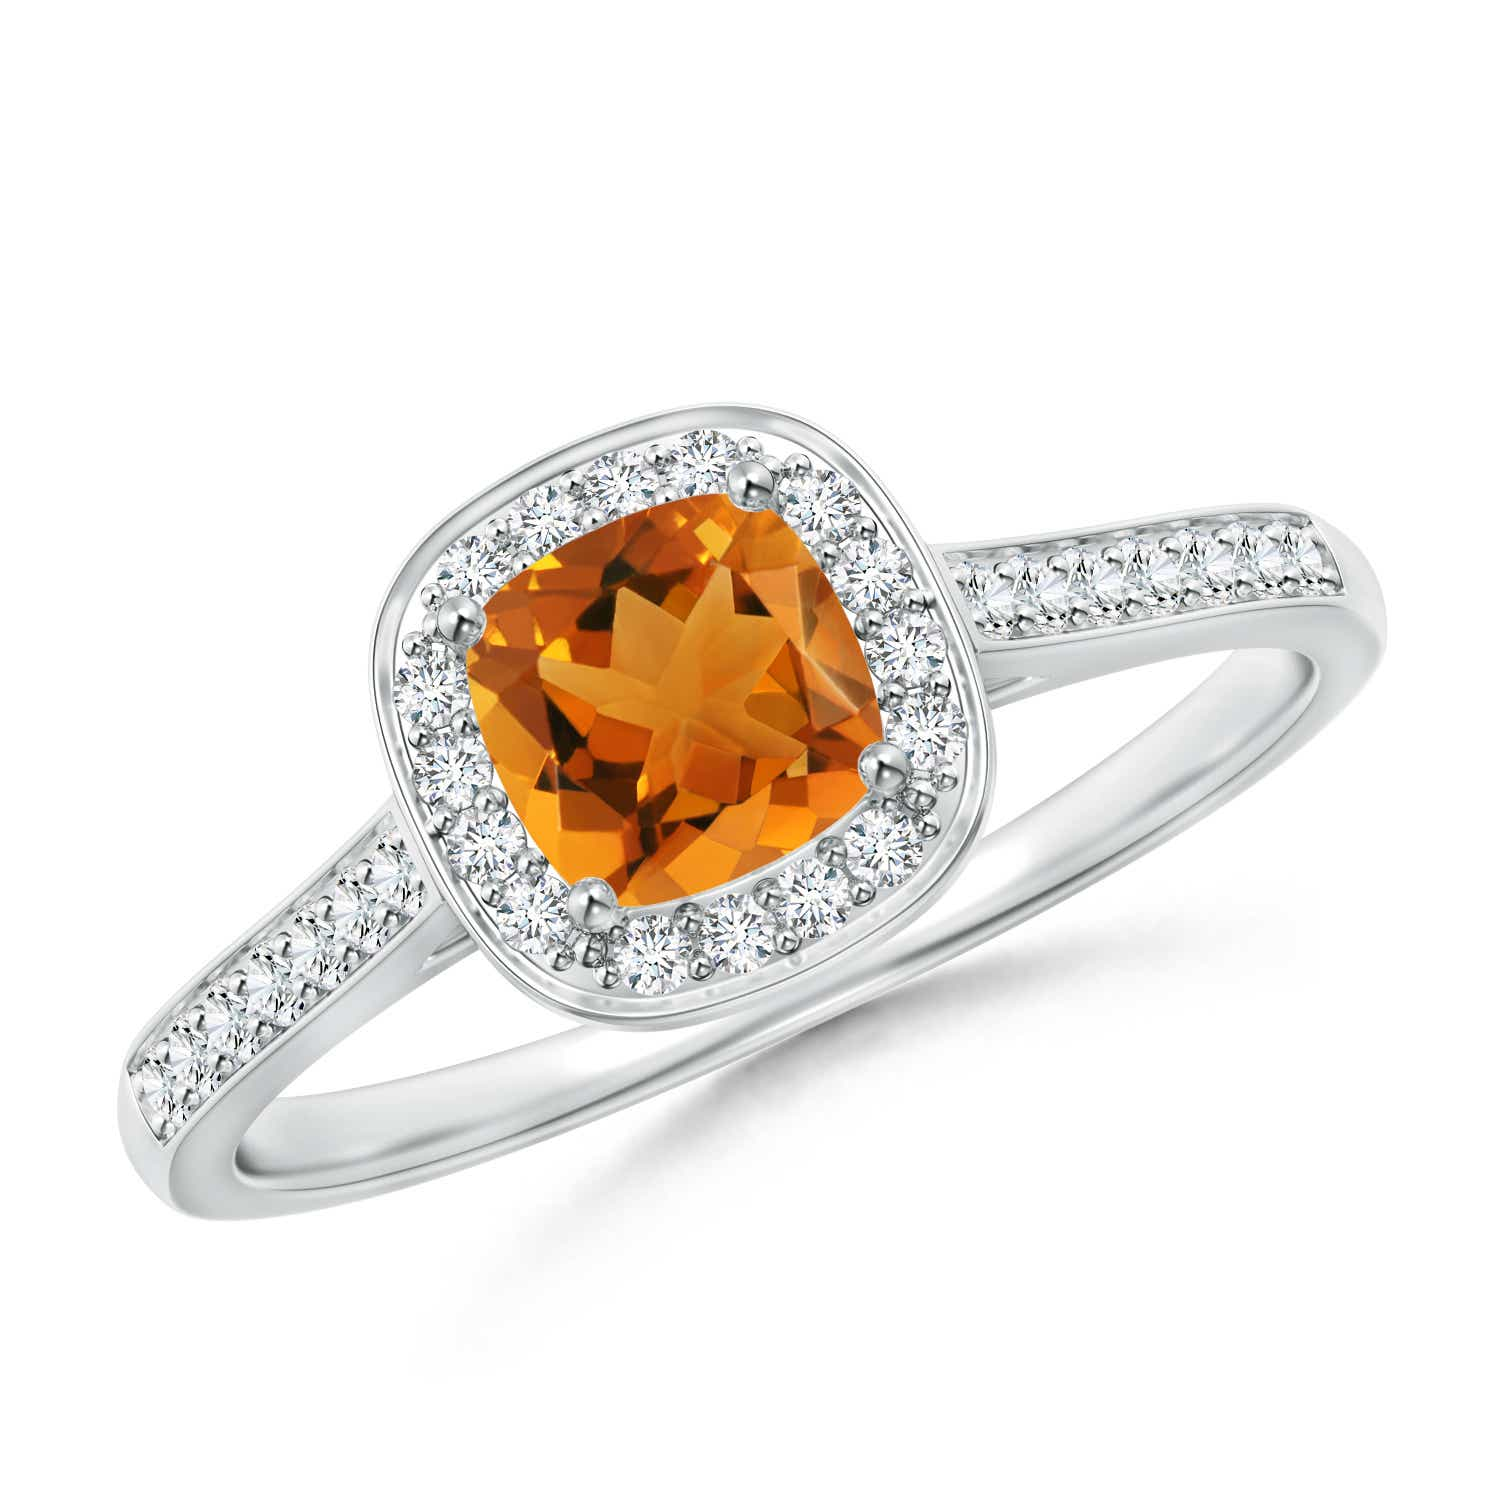 Angara Vintage Style Citrine Engagement Ring in Platinum